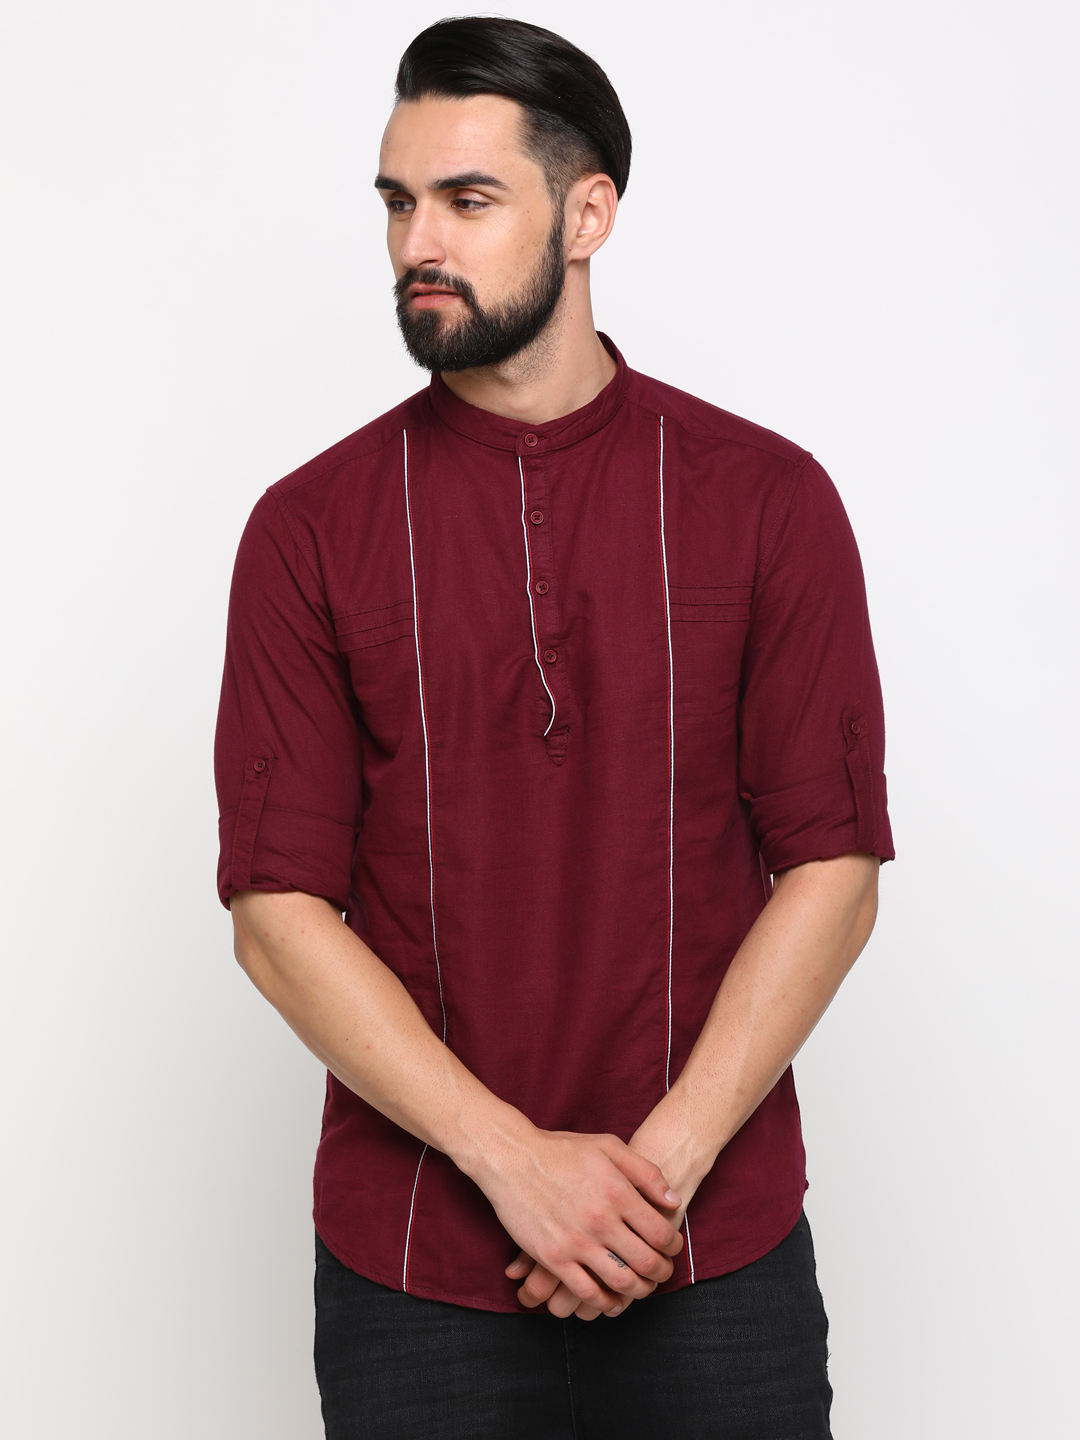 With | With Men's Maroon Cotton Solid SlimFit Shirt